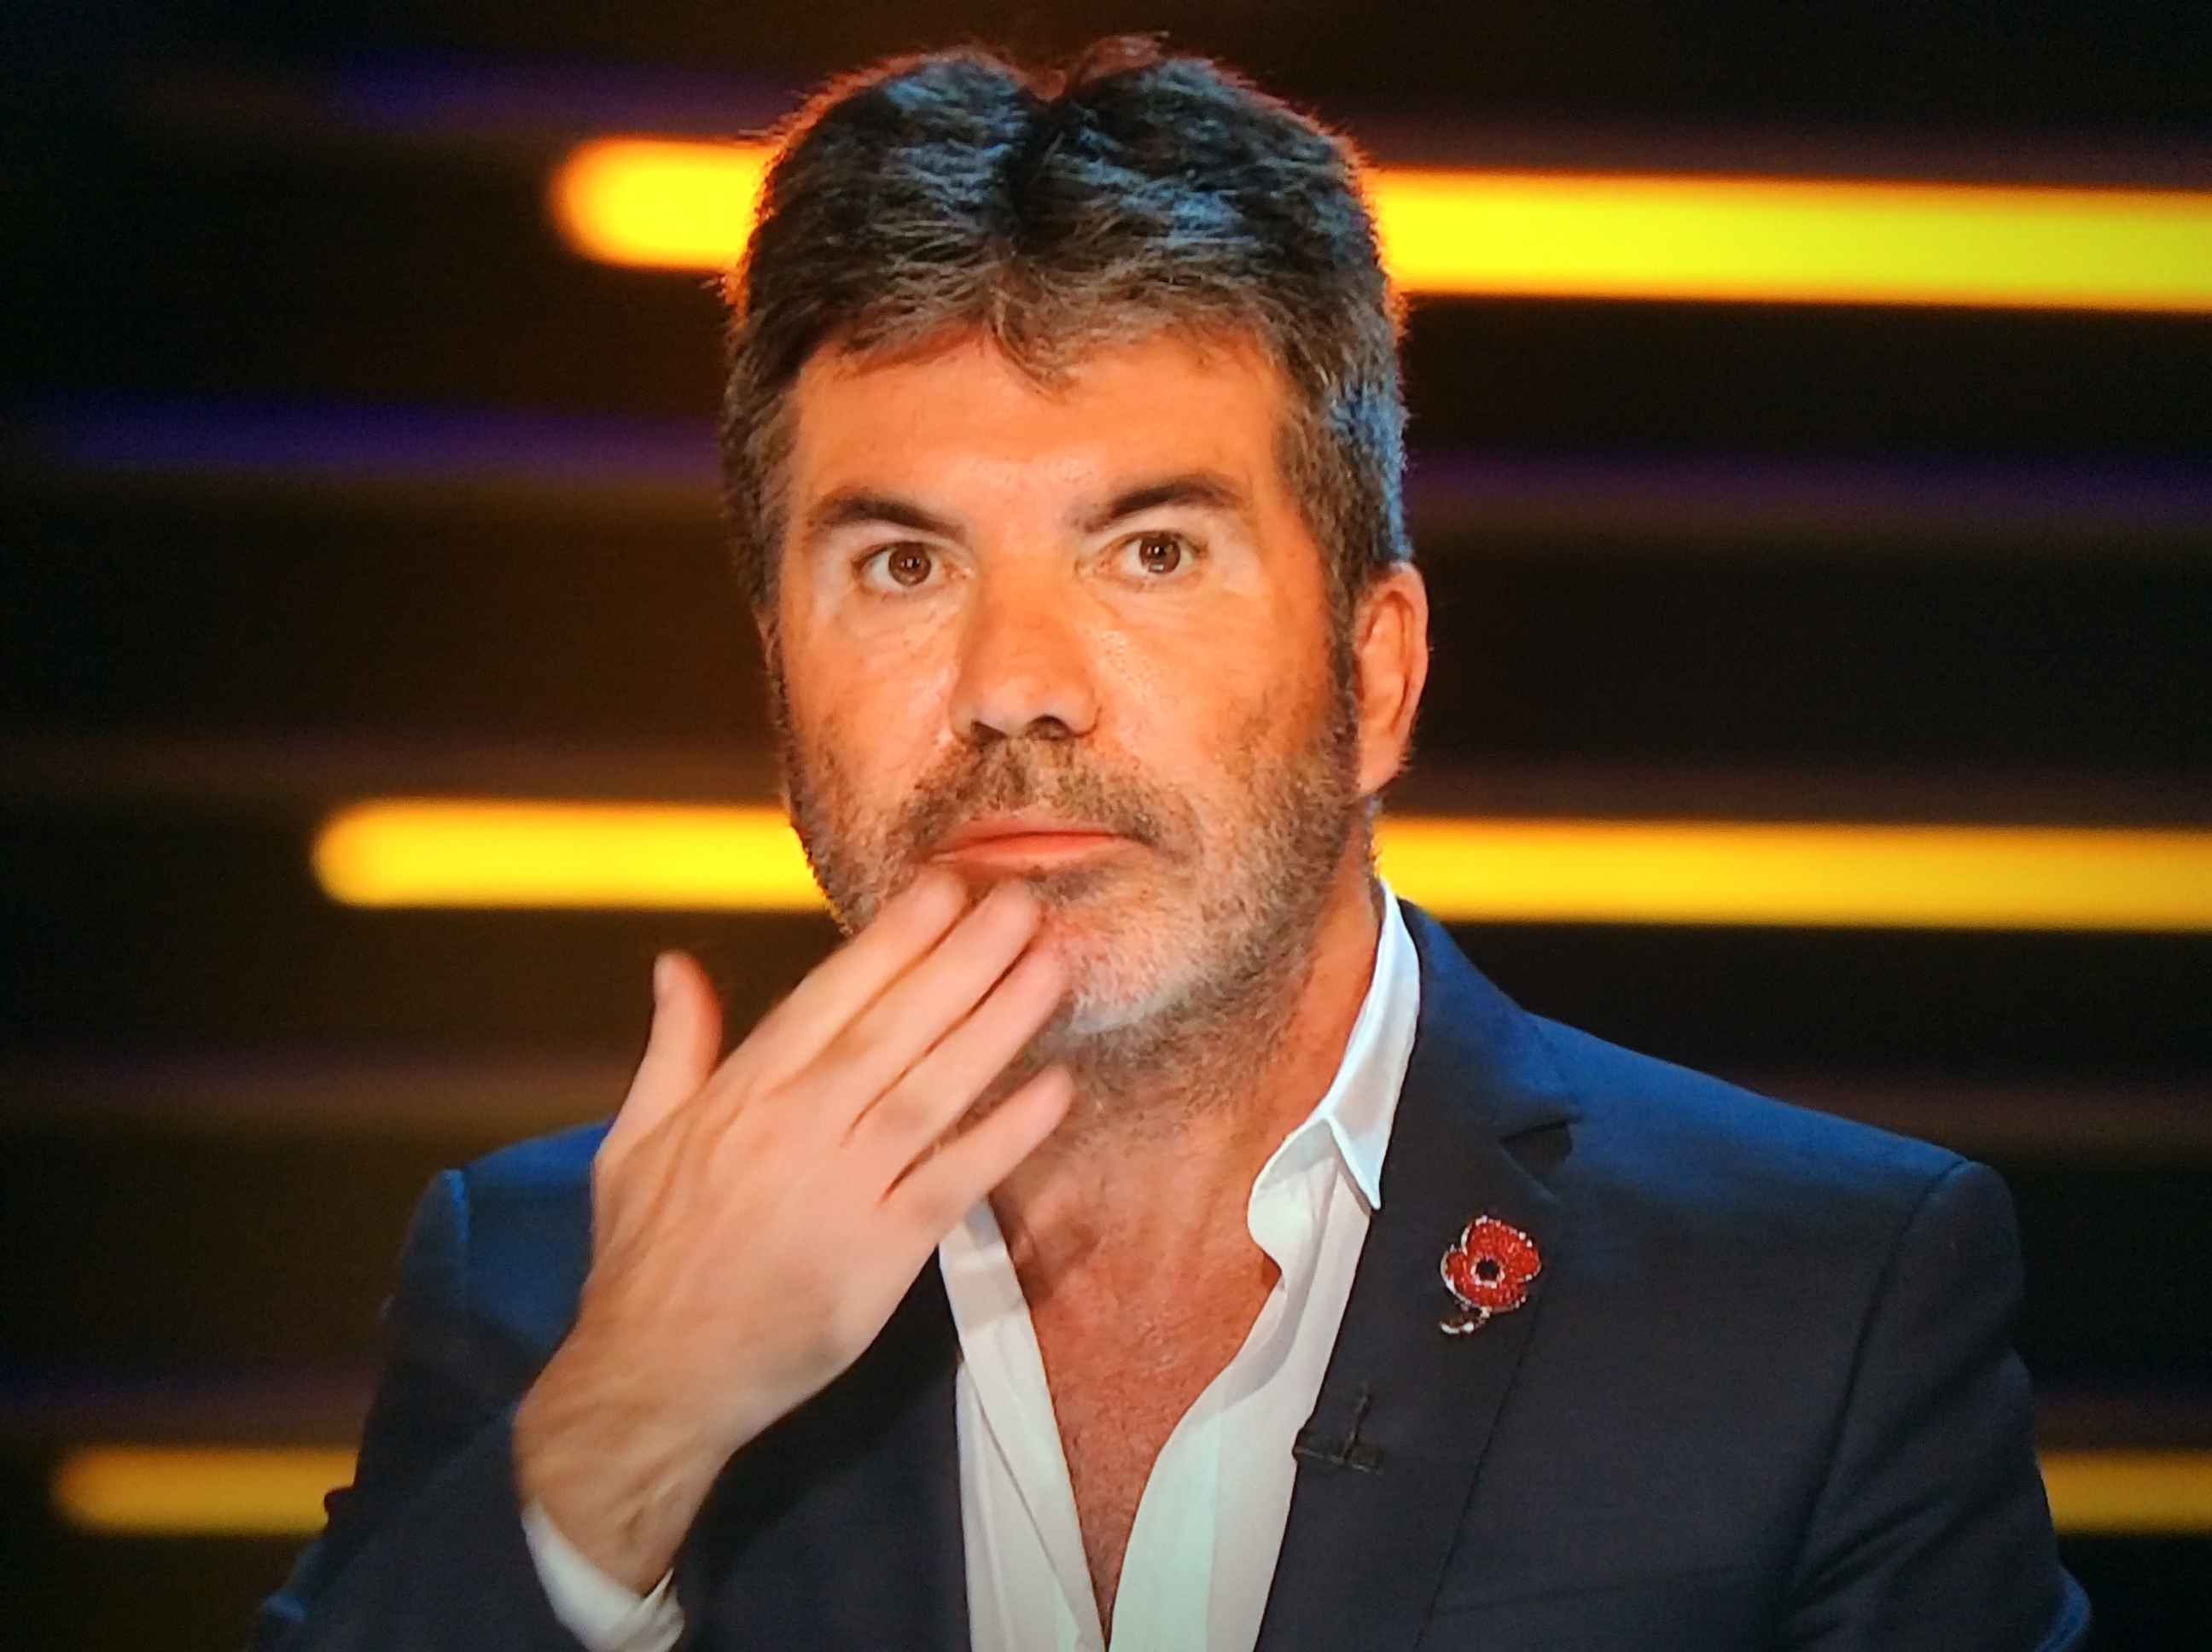 Simon Cowell on week 2 of The X Factor